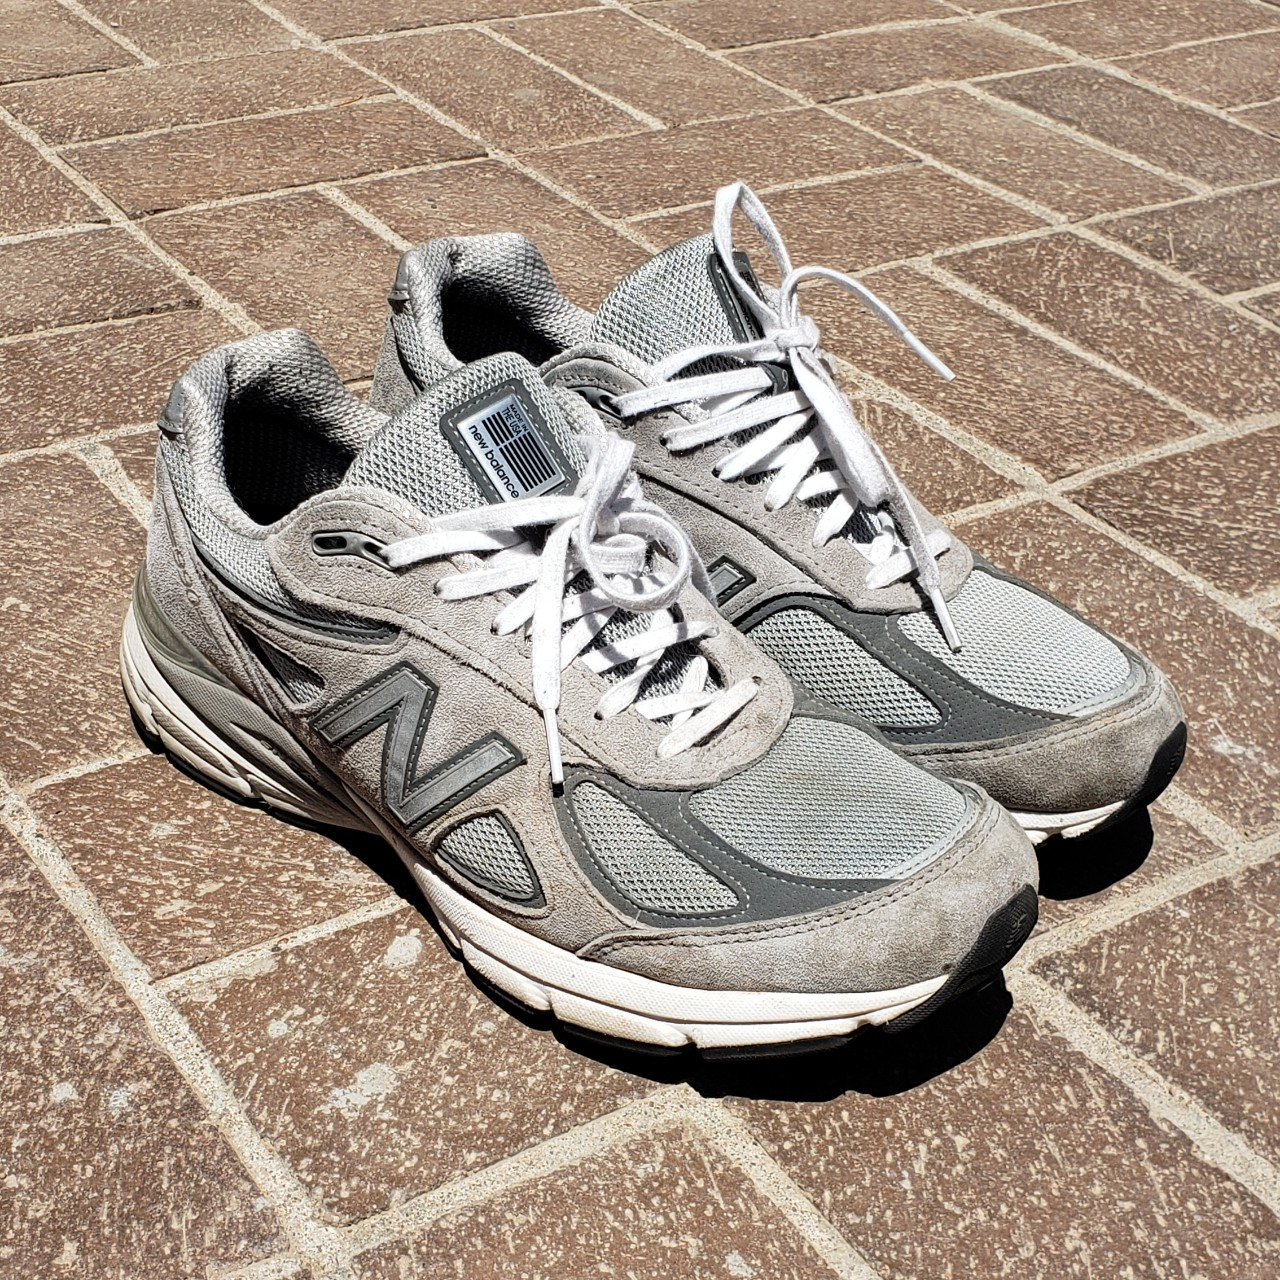 detailing 7be73 c01cc Grey New Balance 990s Great Comfort And Material... - Depop